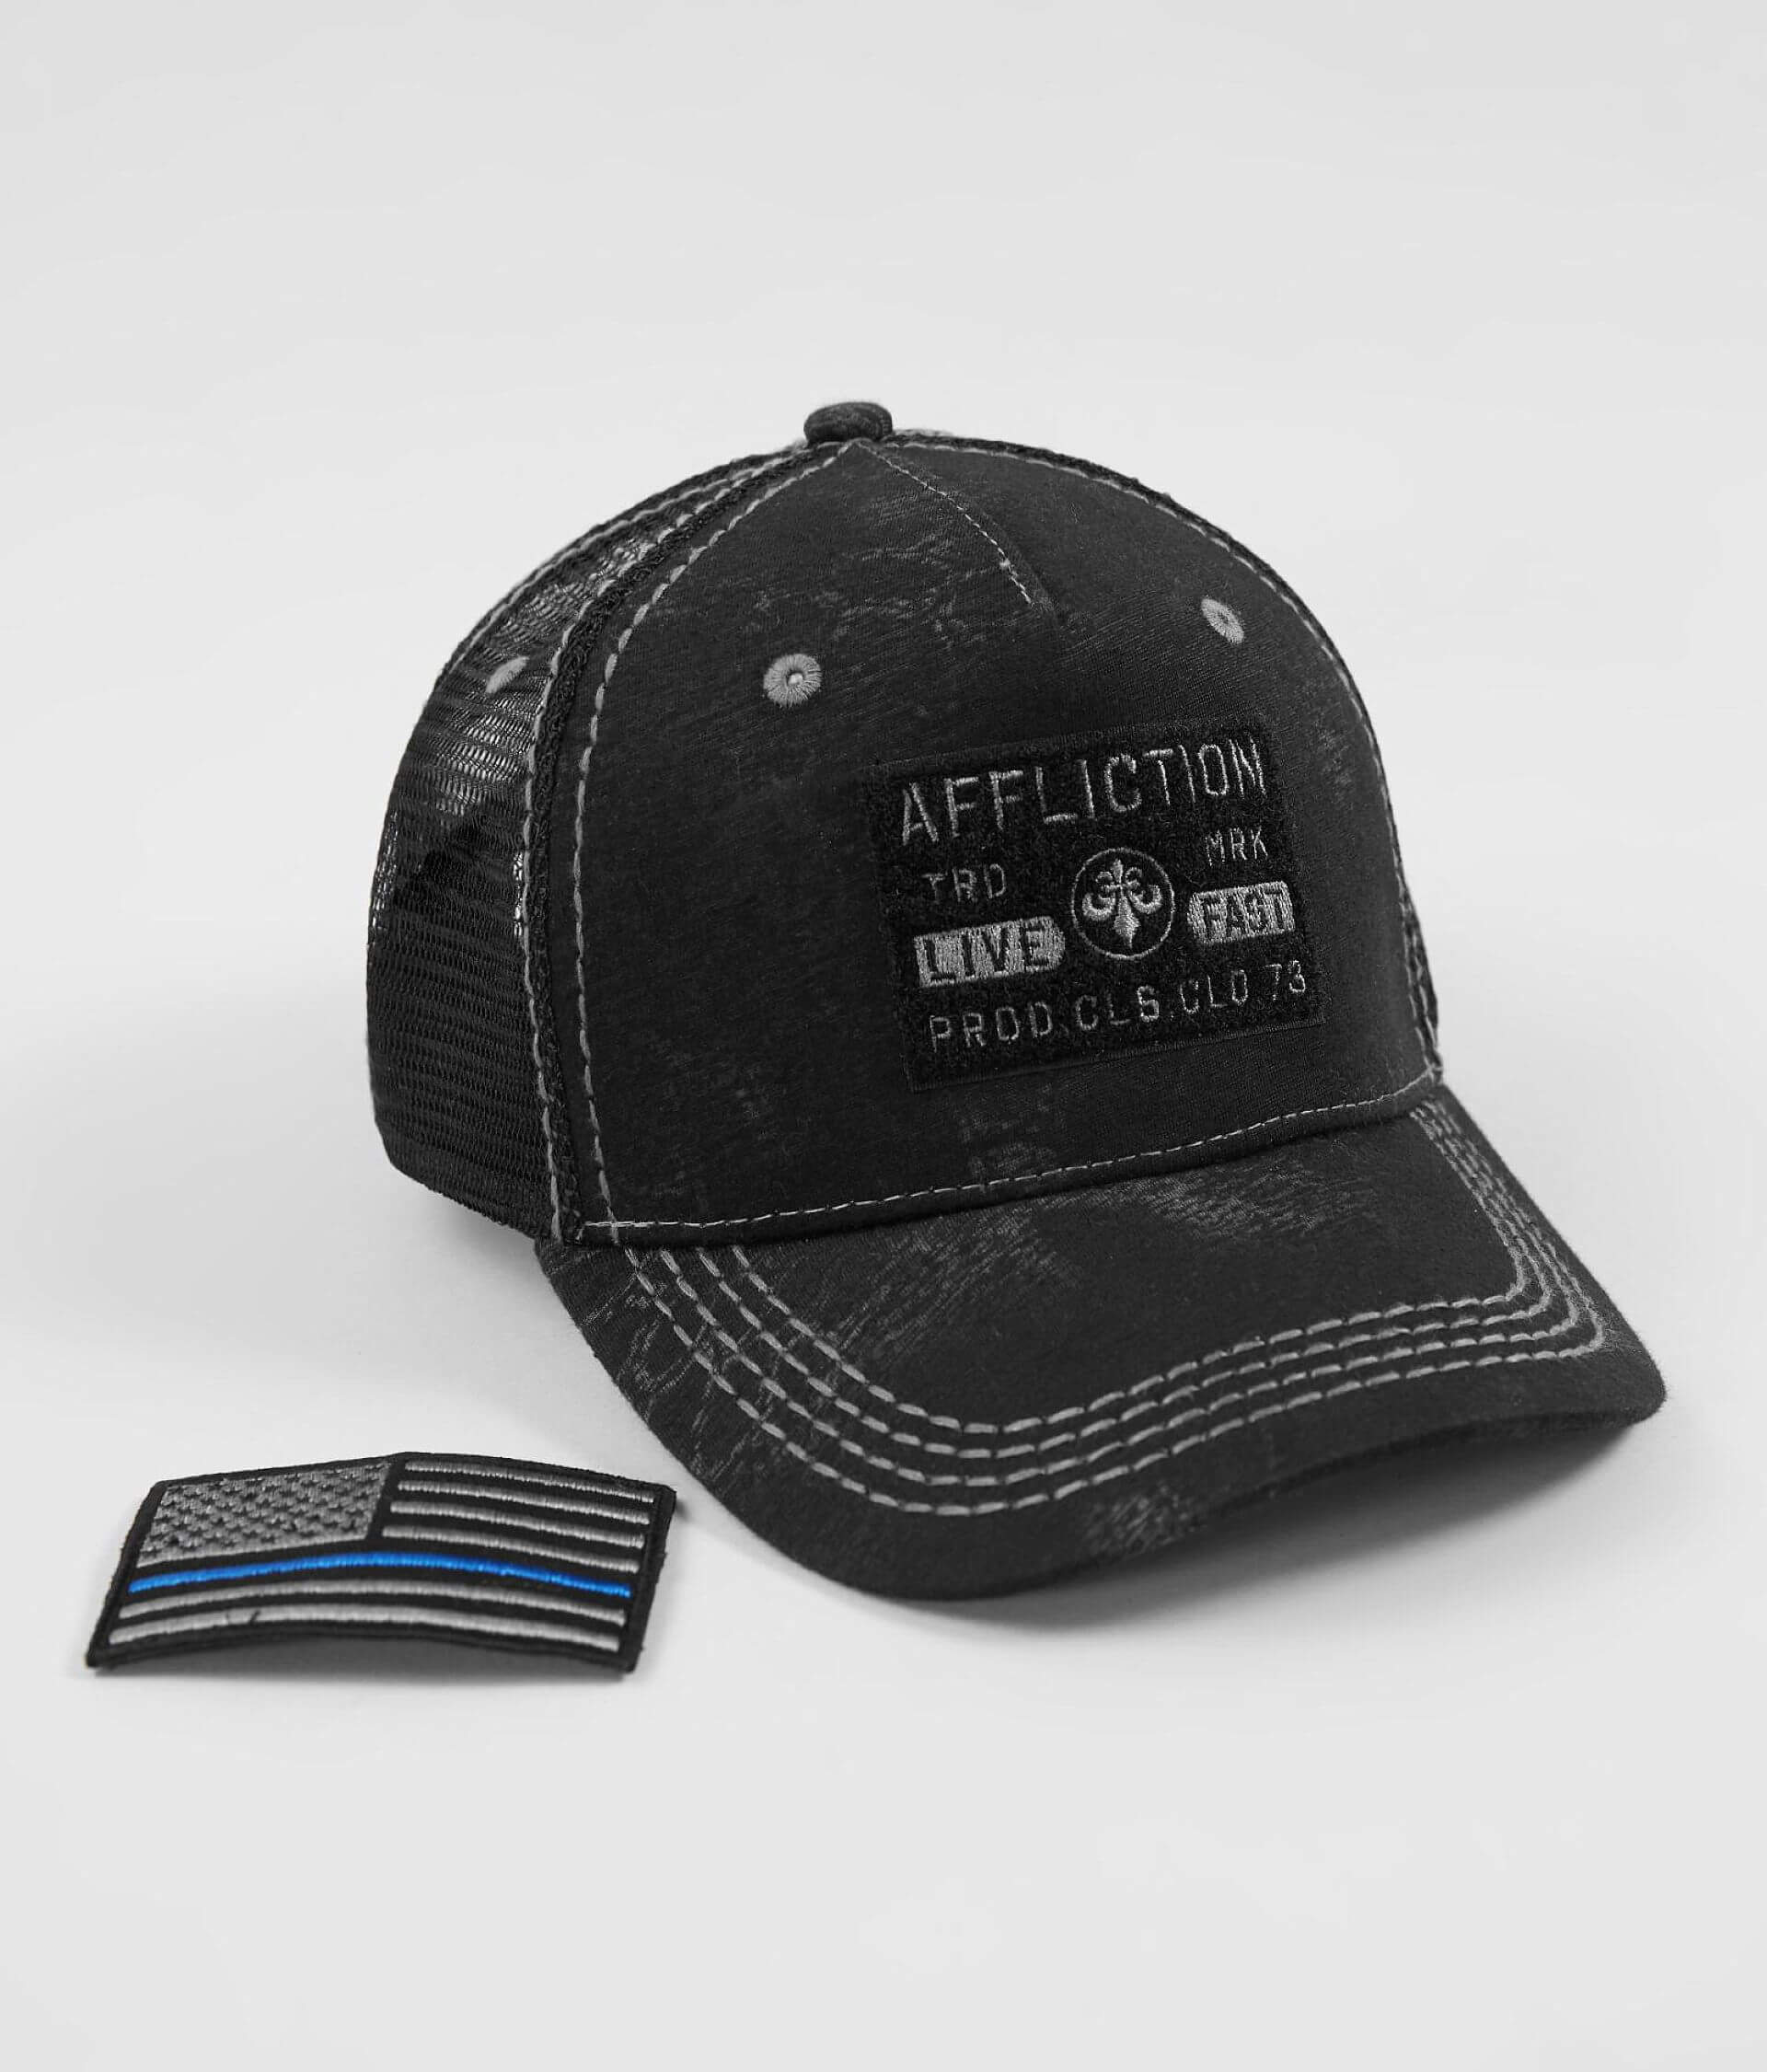 2d092380 Affliction A.4.Good Police Trucker Hat - Men's Hats in Black | Buckle